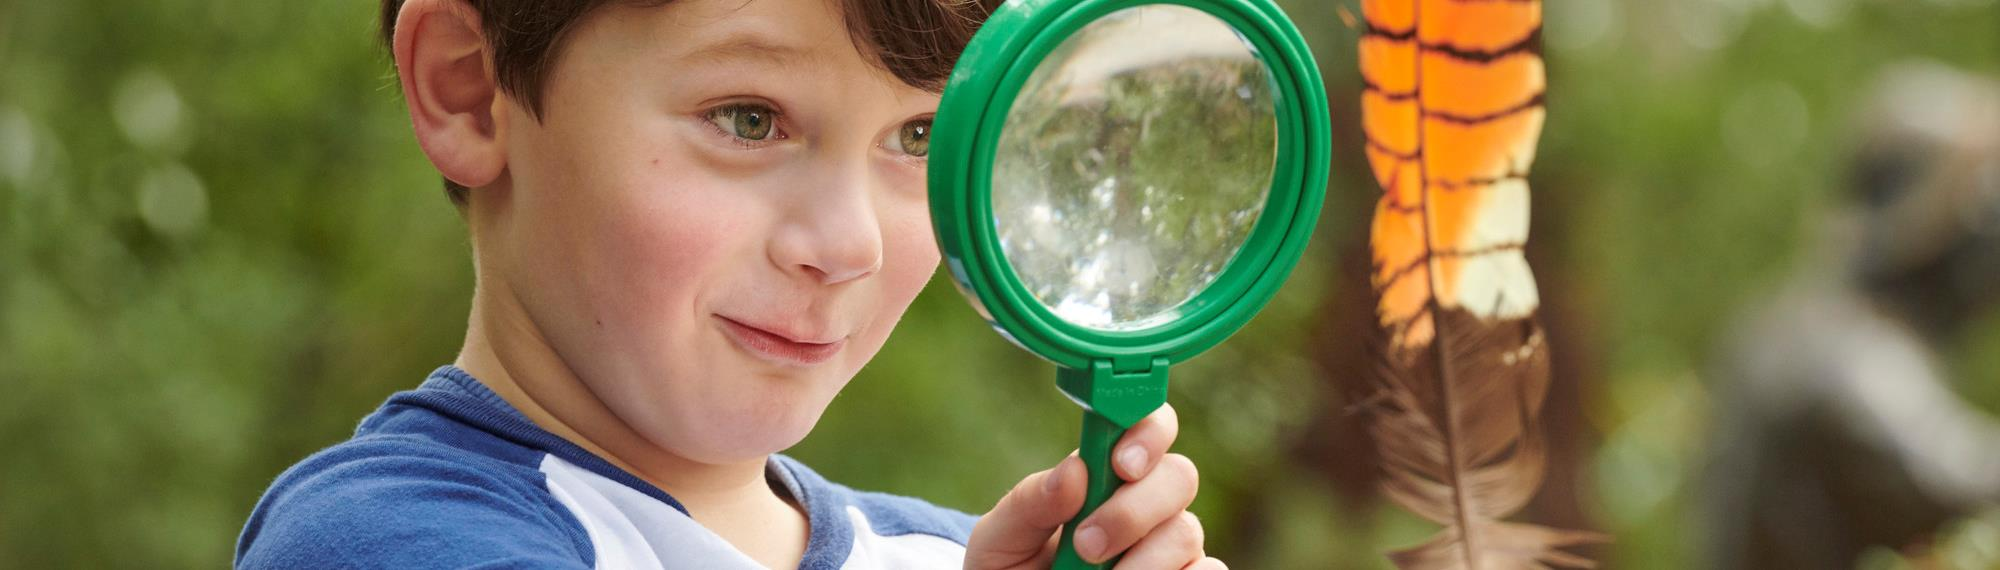 Kindergarten boy looking through a green magnifying glass to examine a brightly coloured orange and black striped feather.